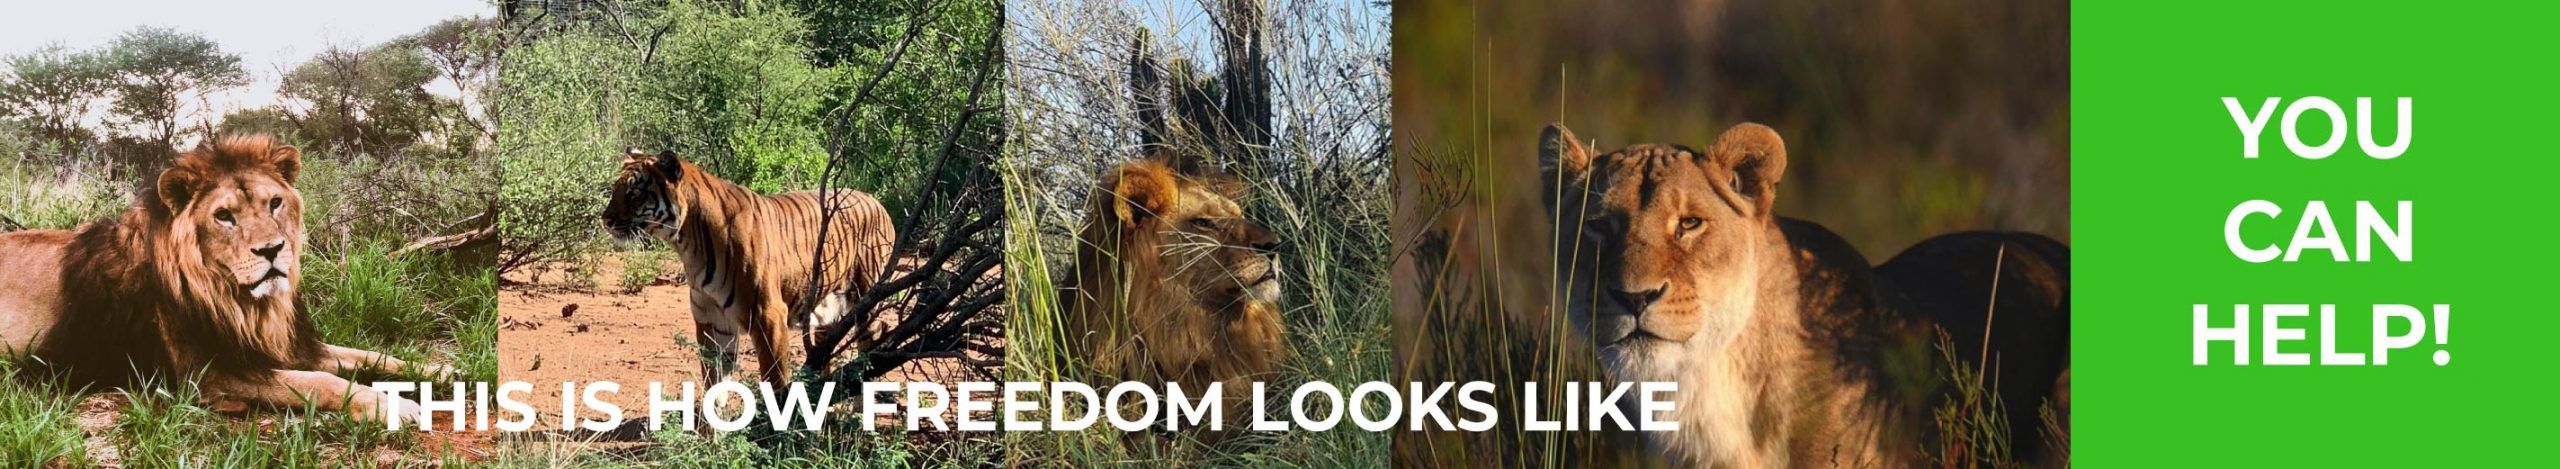 Wildlife Advocates Foundation - for freedom